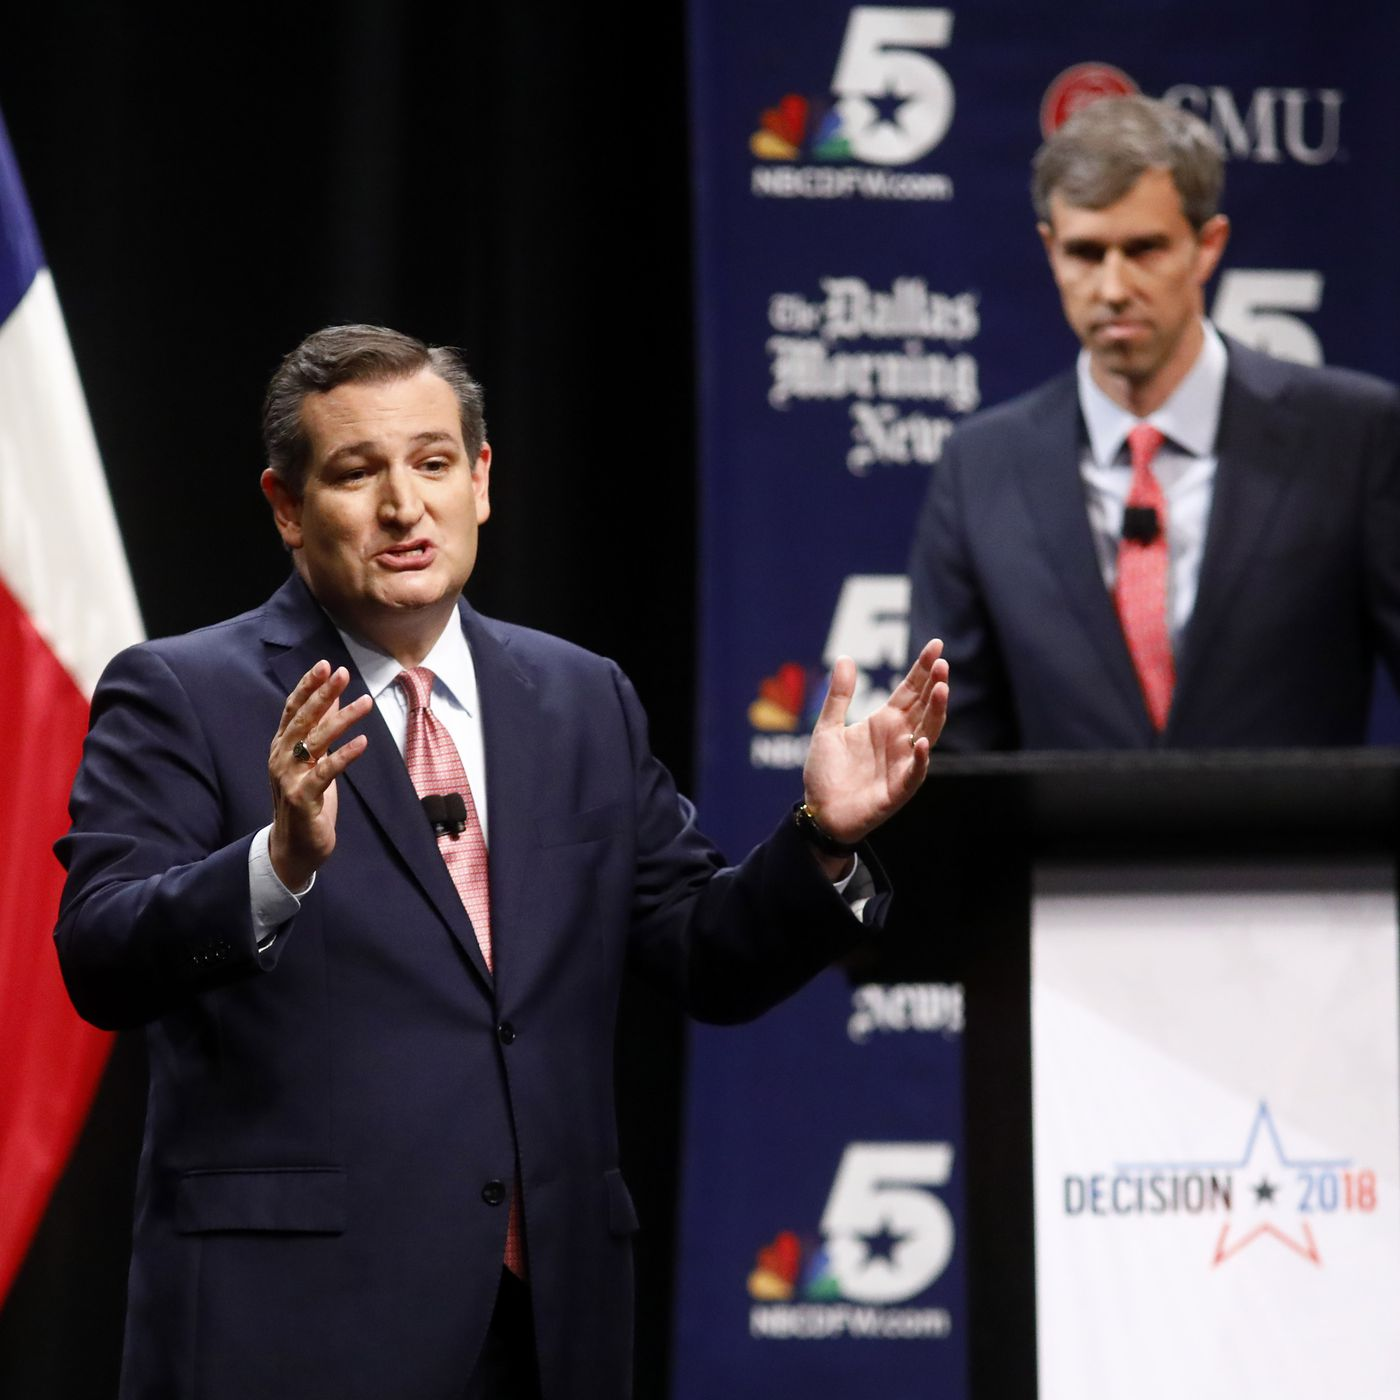 vox.com - Emily Stewart - Ted Cruz tweets out viral Beto O'Rourke video in a bizarre move